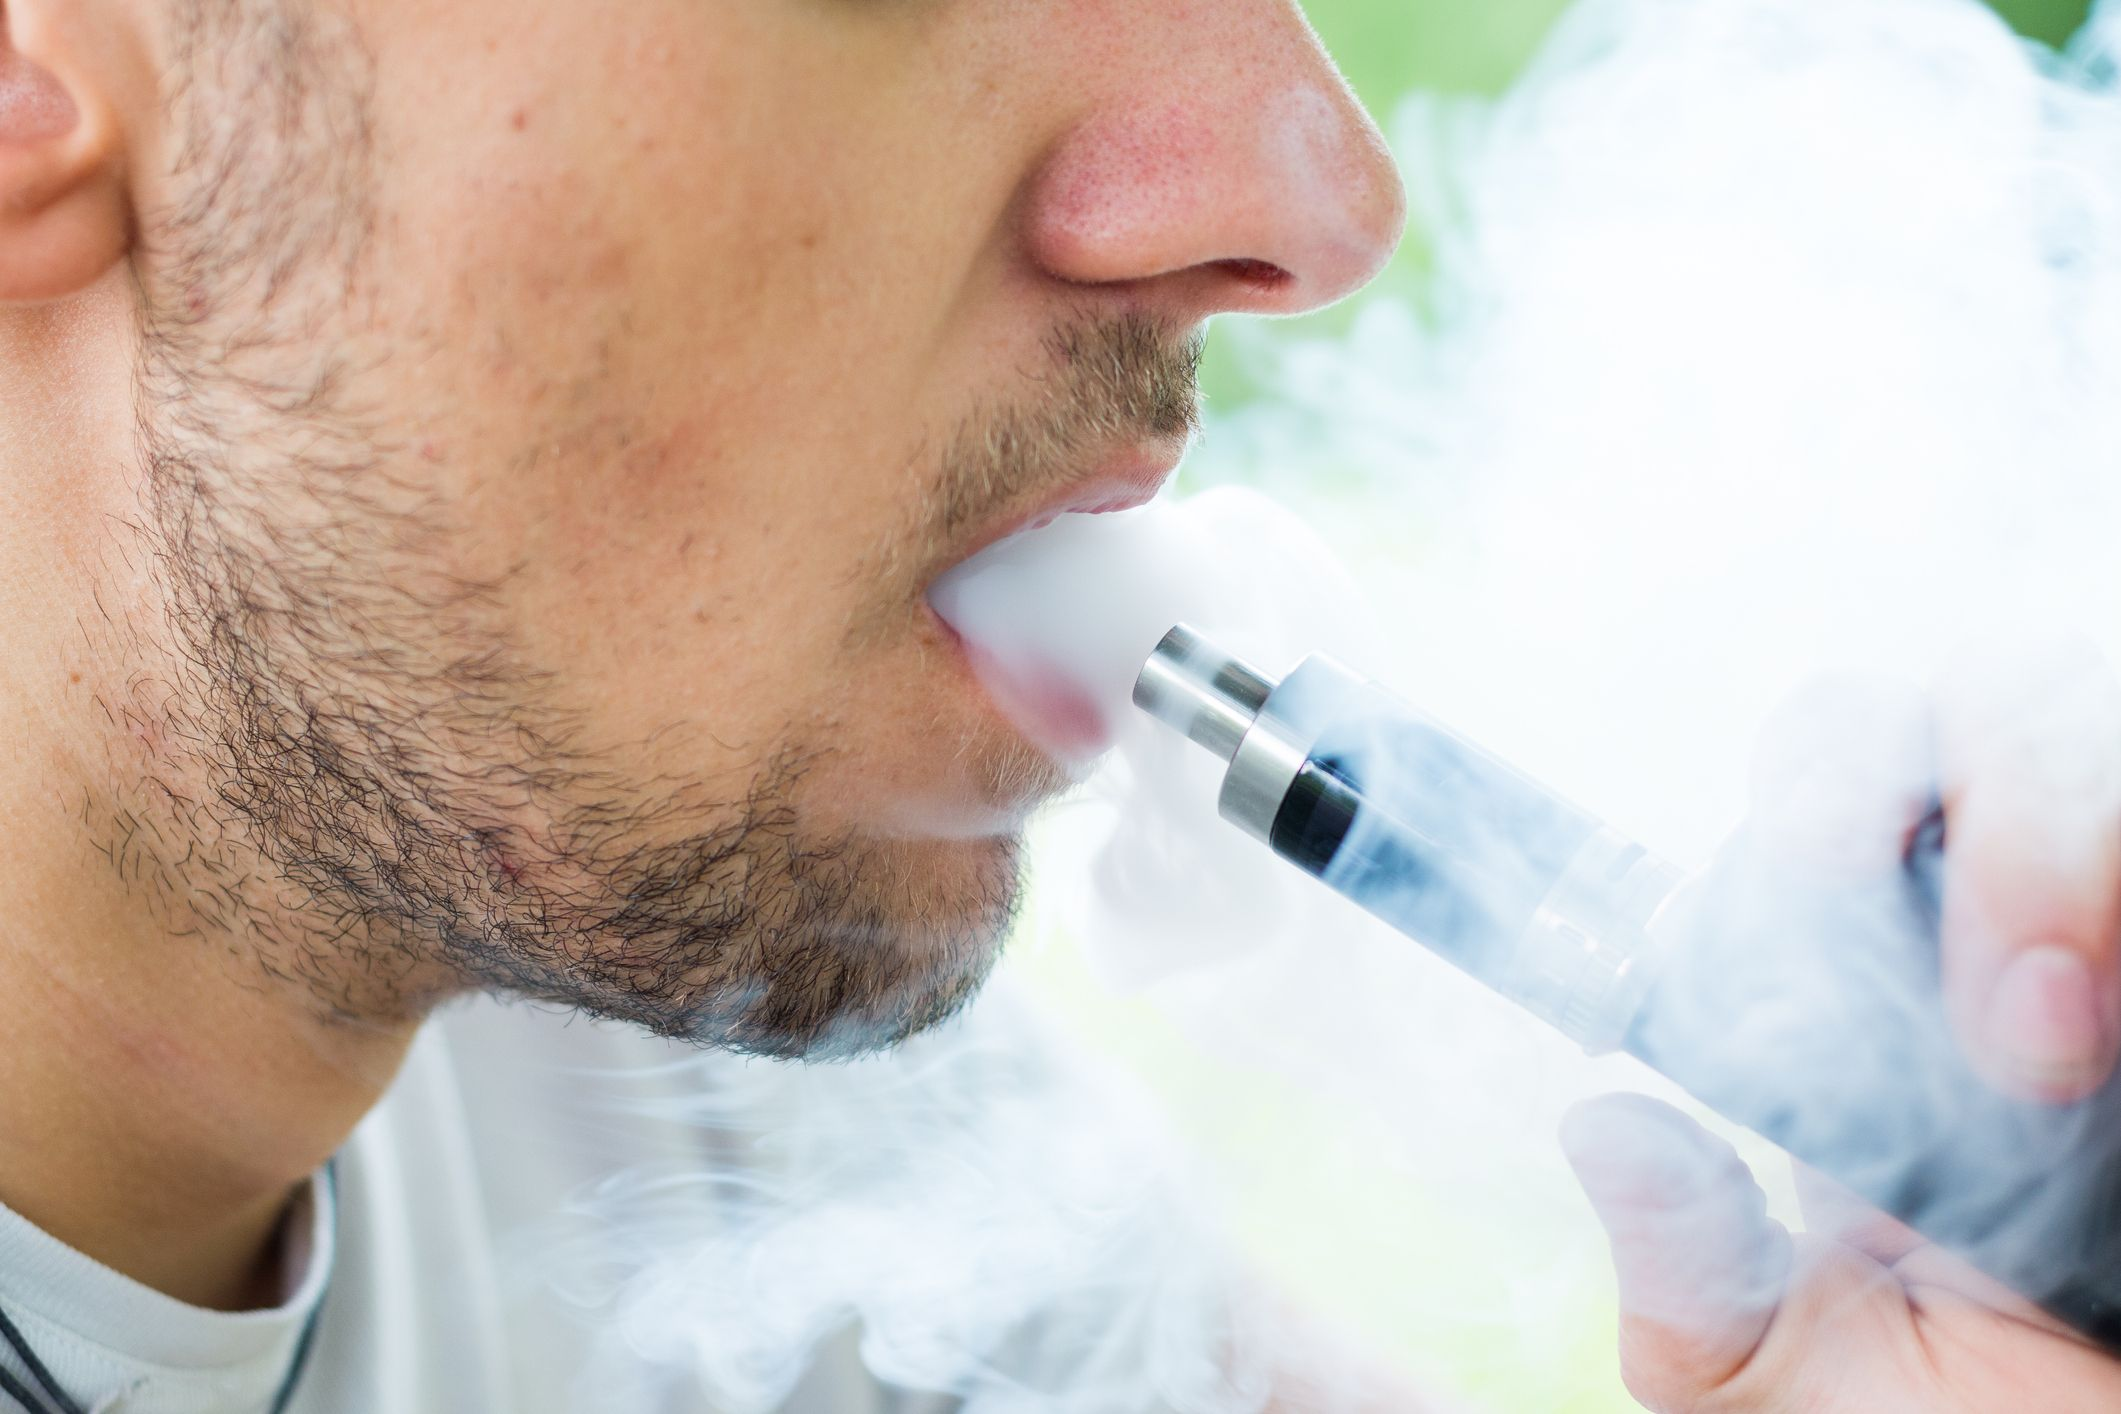 Teens Are Vaping So Much That Schools Want to Test For Nicotine